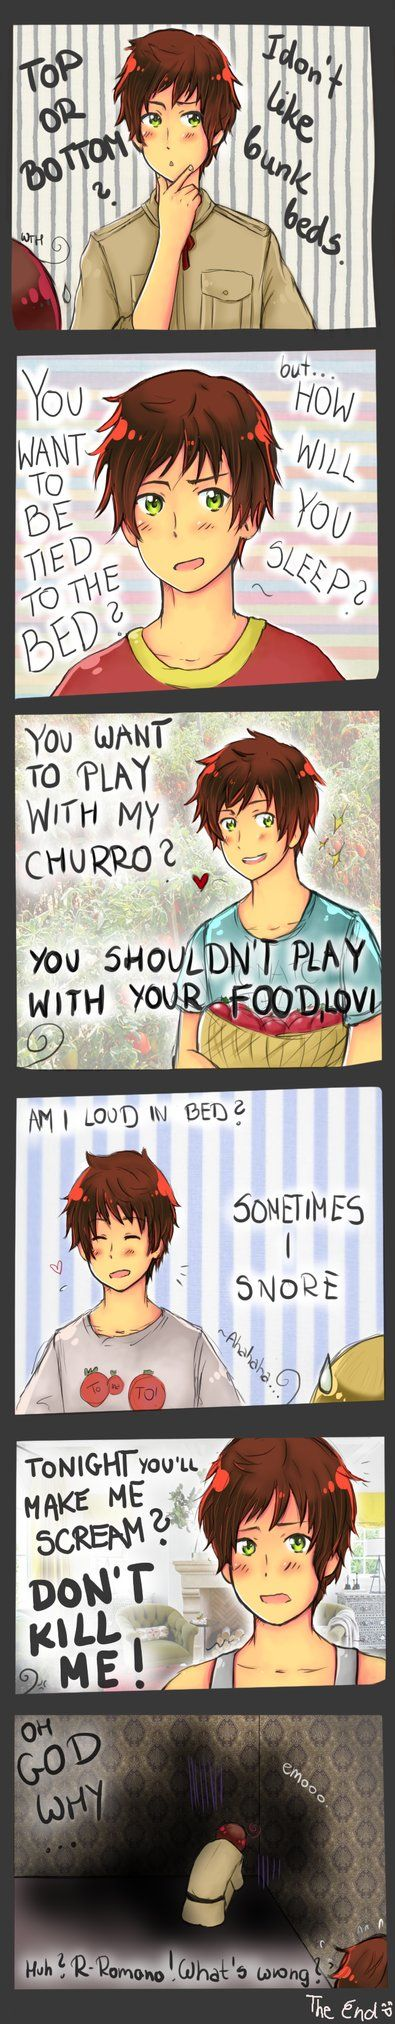 oh Spain.........so oblivious...... LOL XD Romano's in the corner like what did I do to deserve this